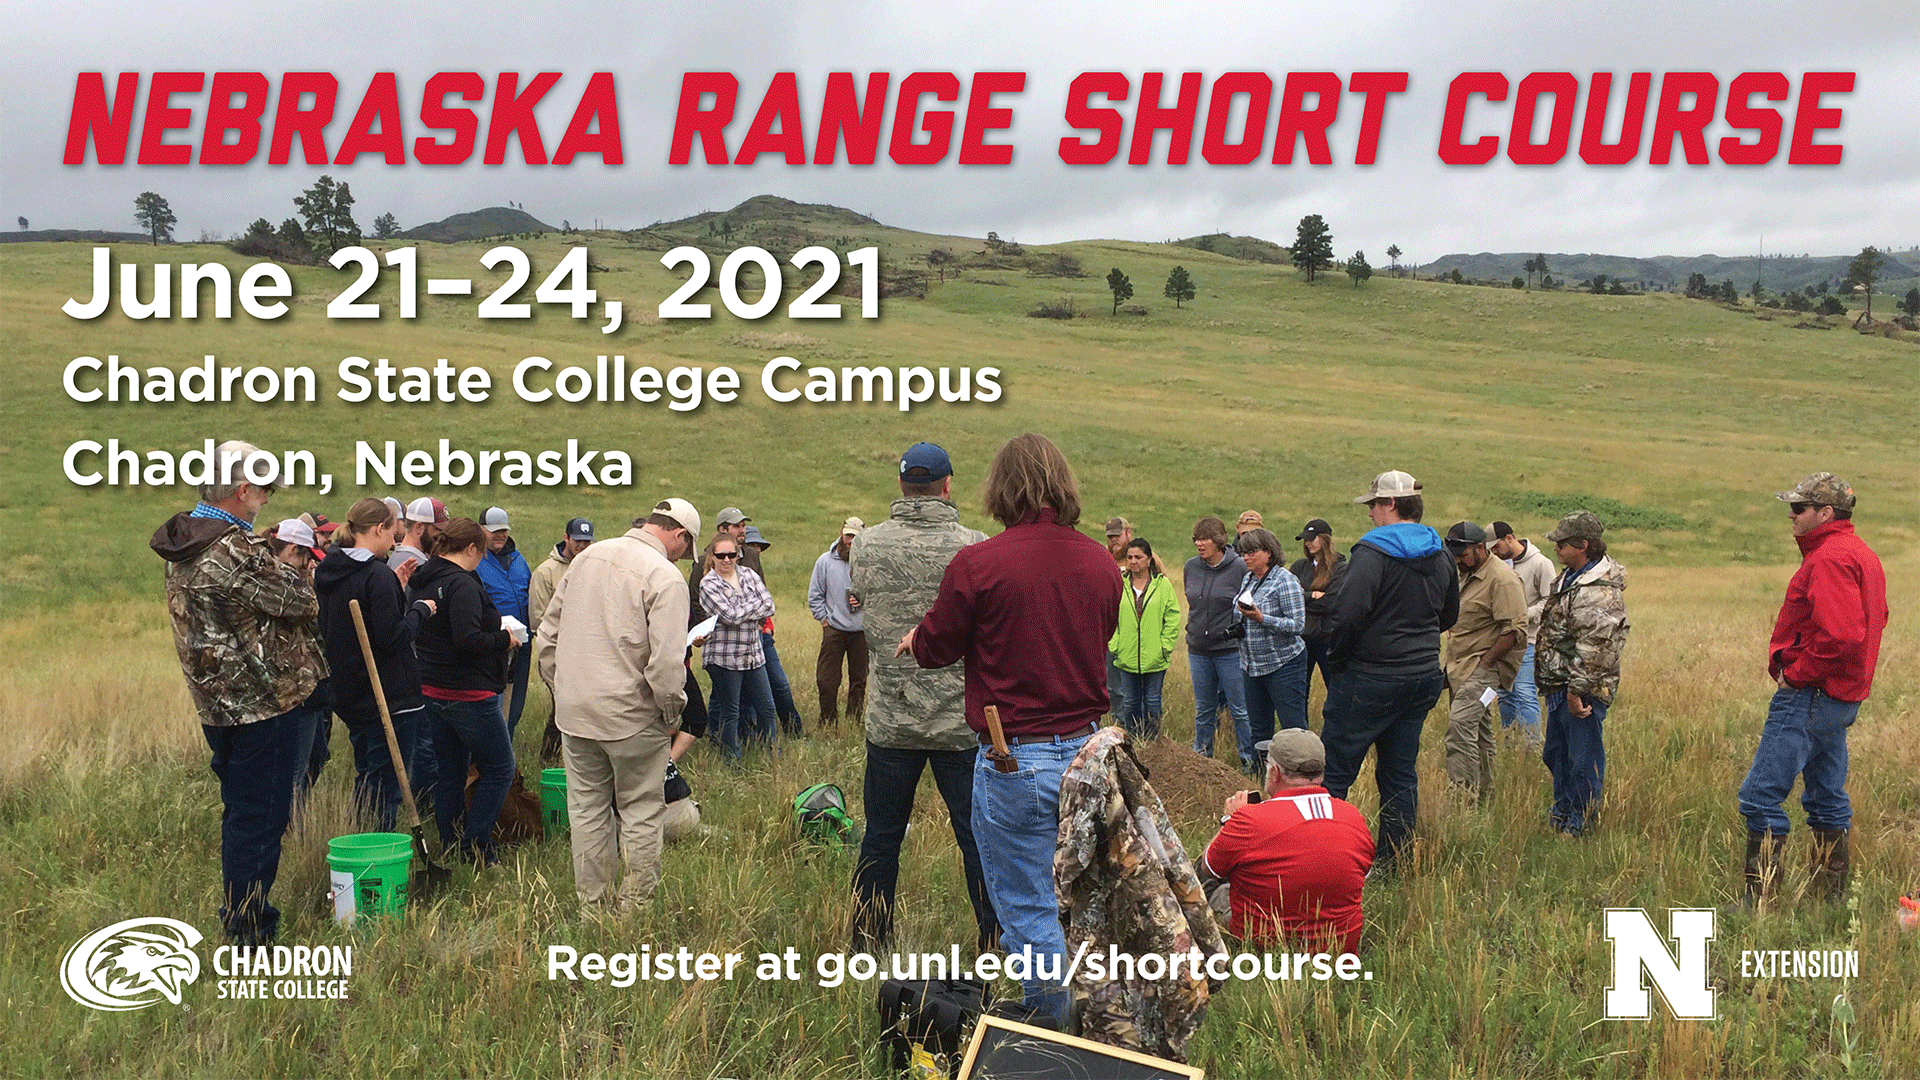 The Nebraska Range Short Course will be held at Chadron State College June 21–24.